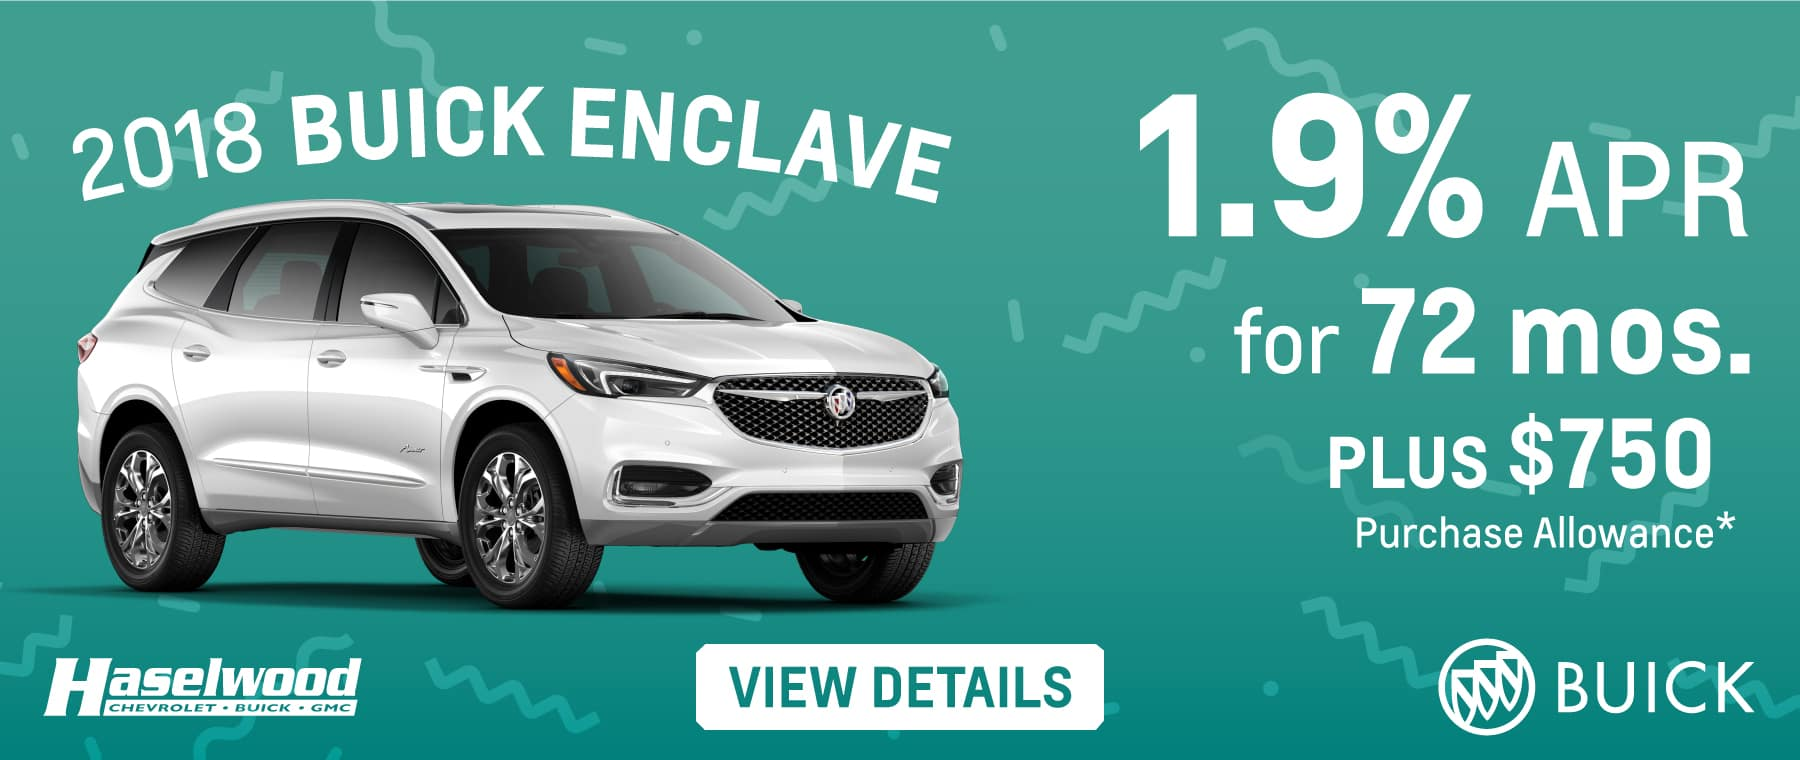 2018 Buick Enclave  1.9% APR for 72 mos. PLUS $750 Purchase Allowance*